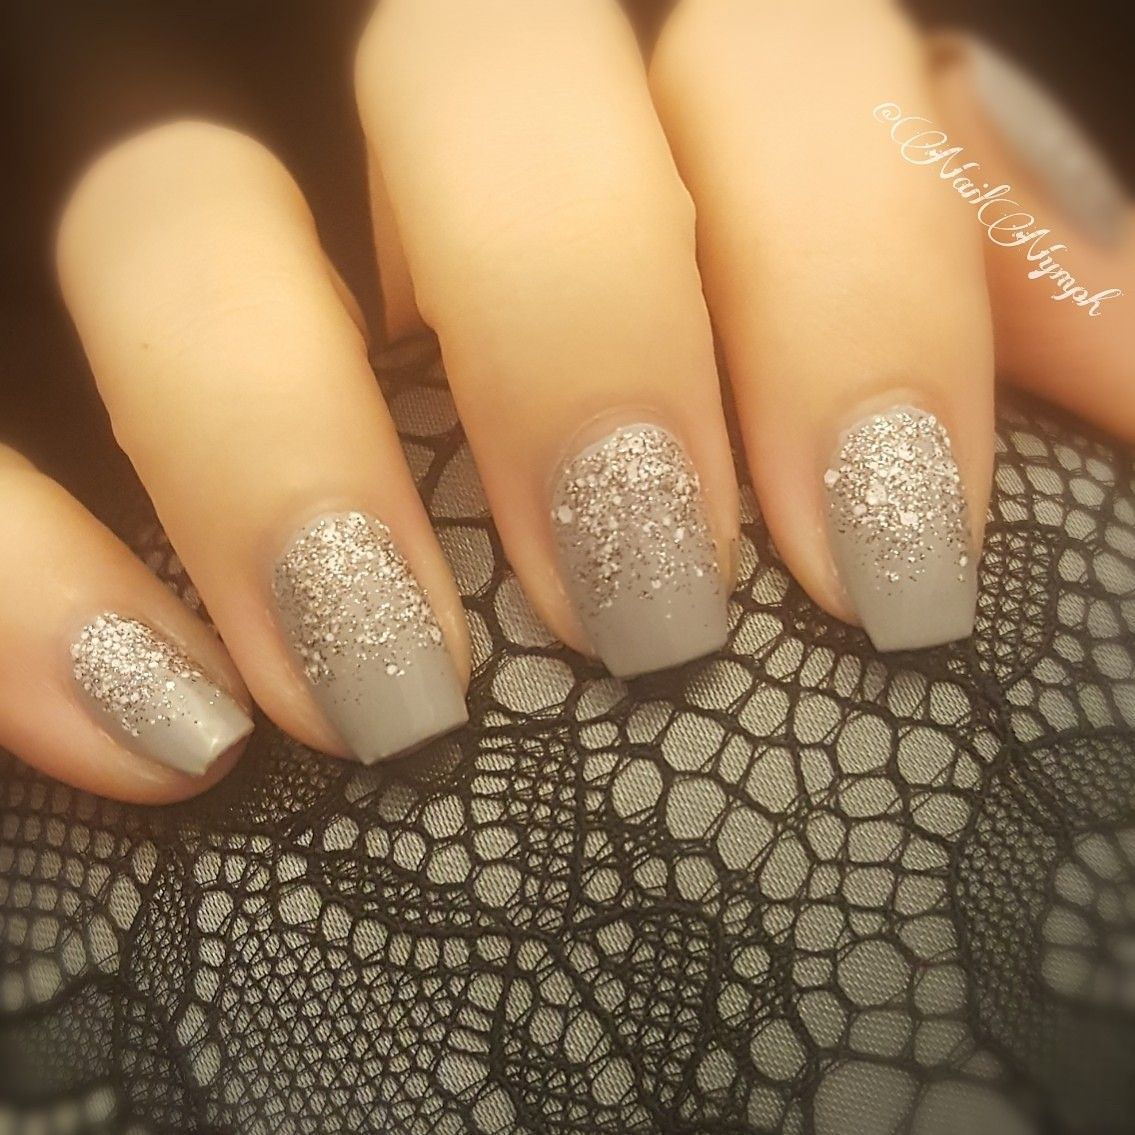 Good New Years nails. Maybe would be cute in pink | NAILS ...